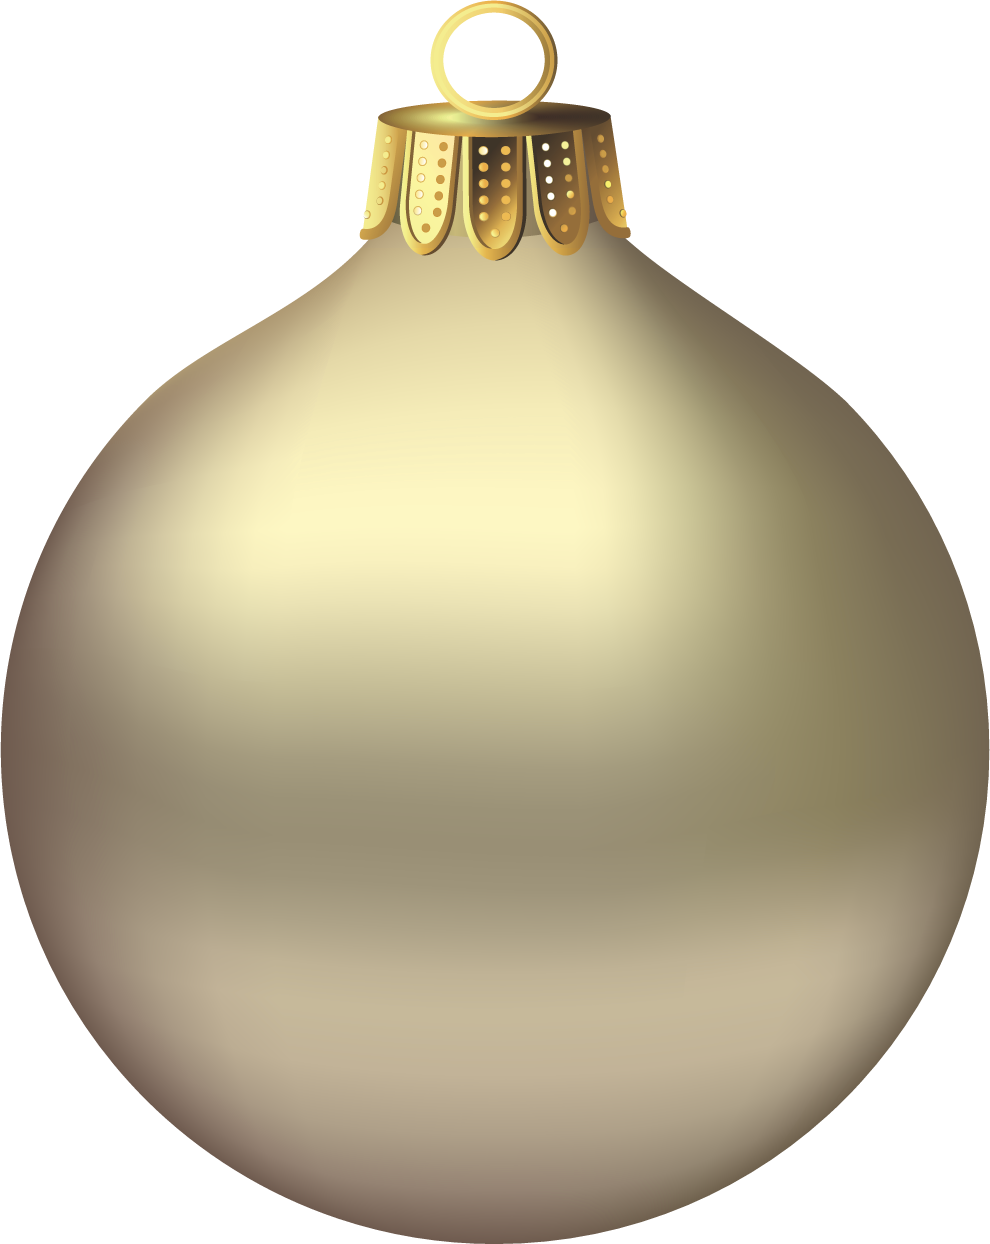 Christmas ornament png transparent. Colored tree ornaments clipart